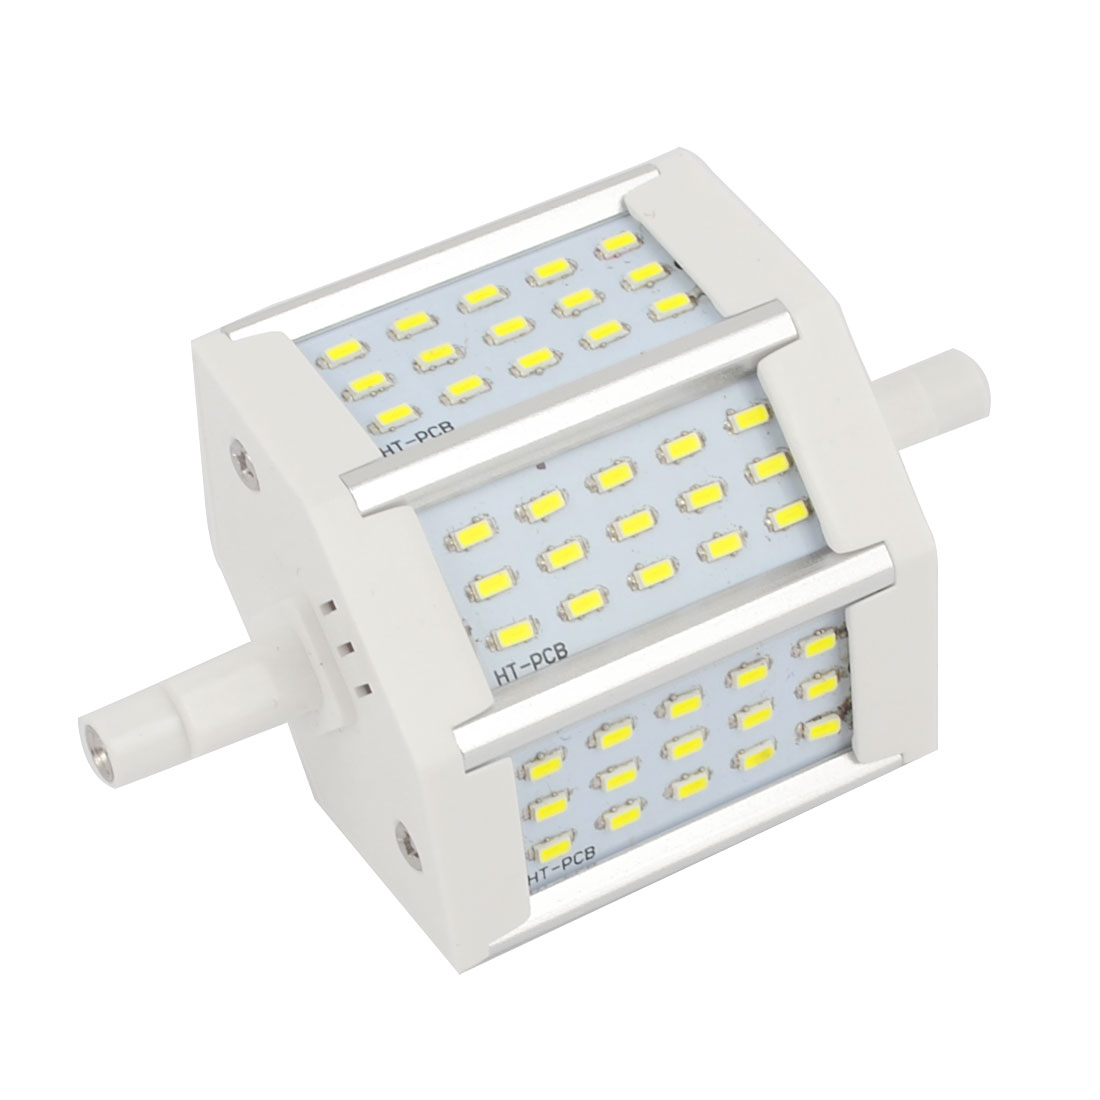 R7S AC85-365V 660LM 45 LEDs SMD 3014 White LED Corn Light Bulb